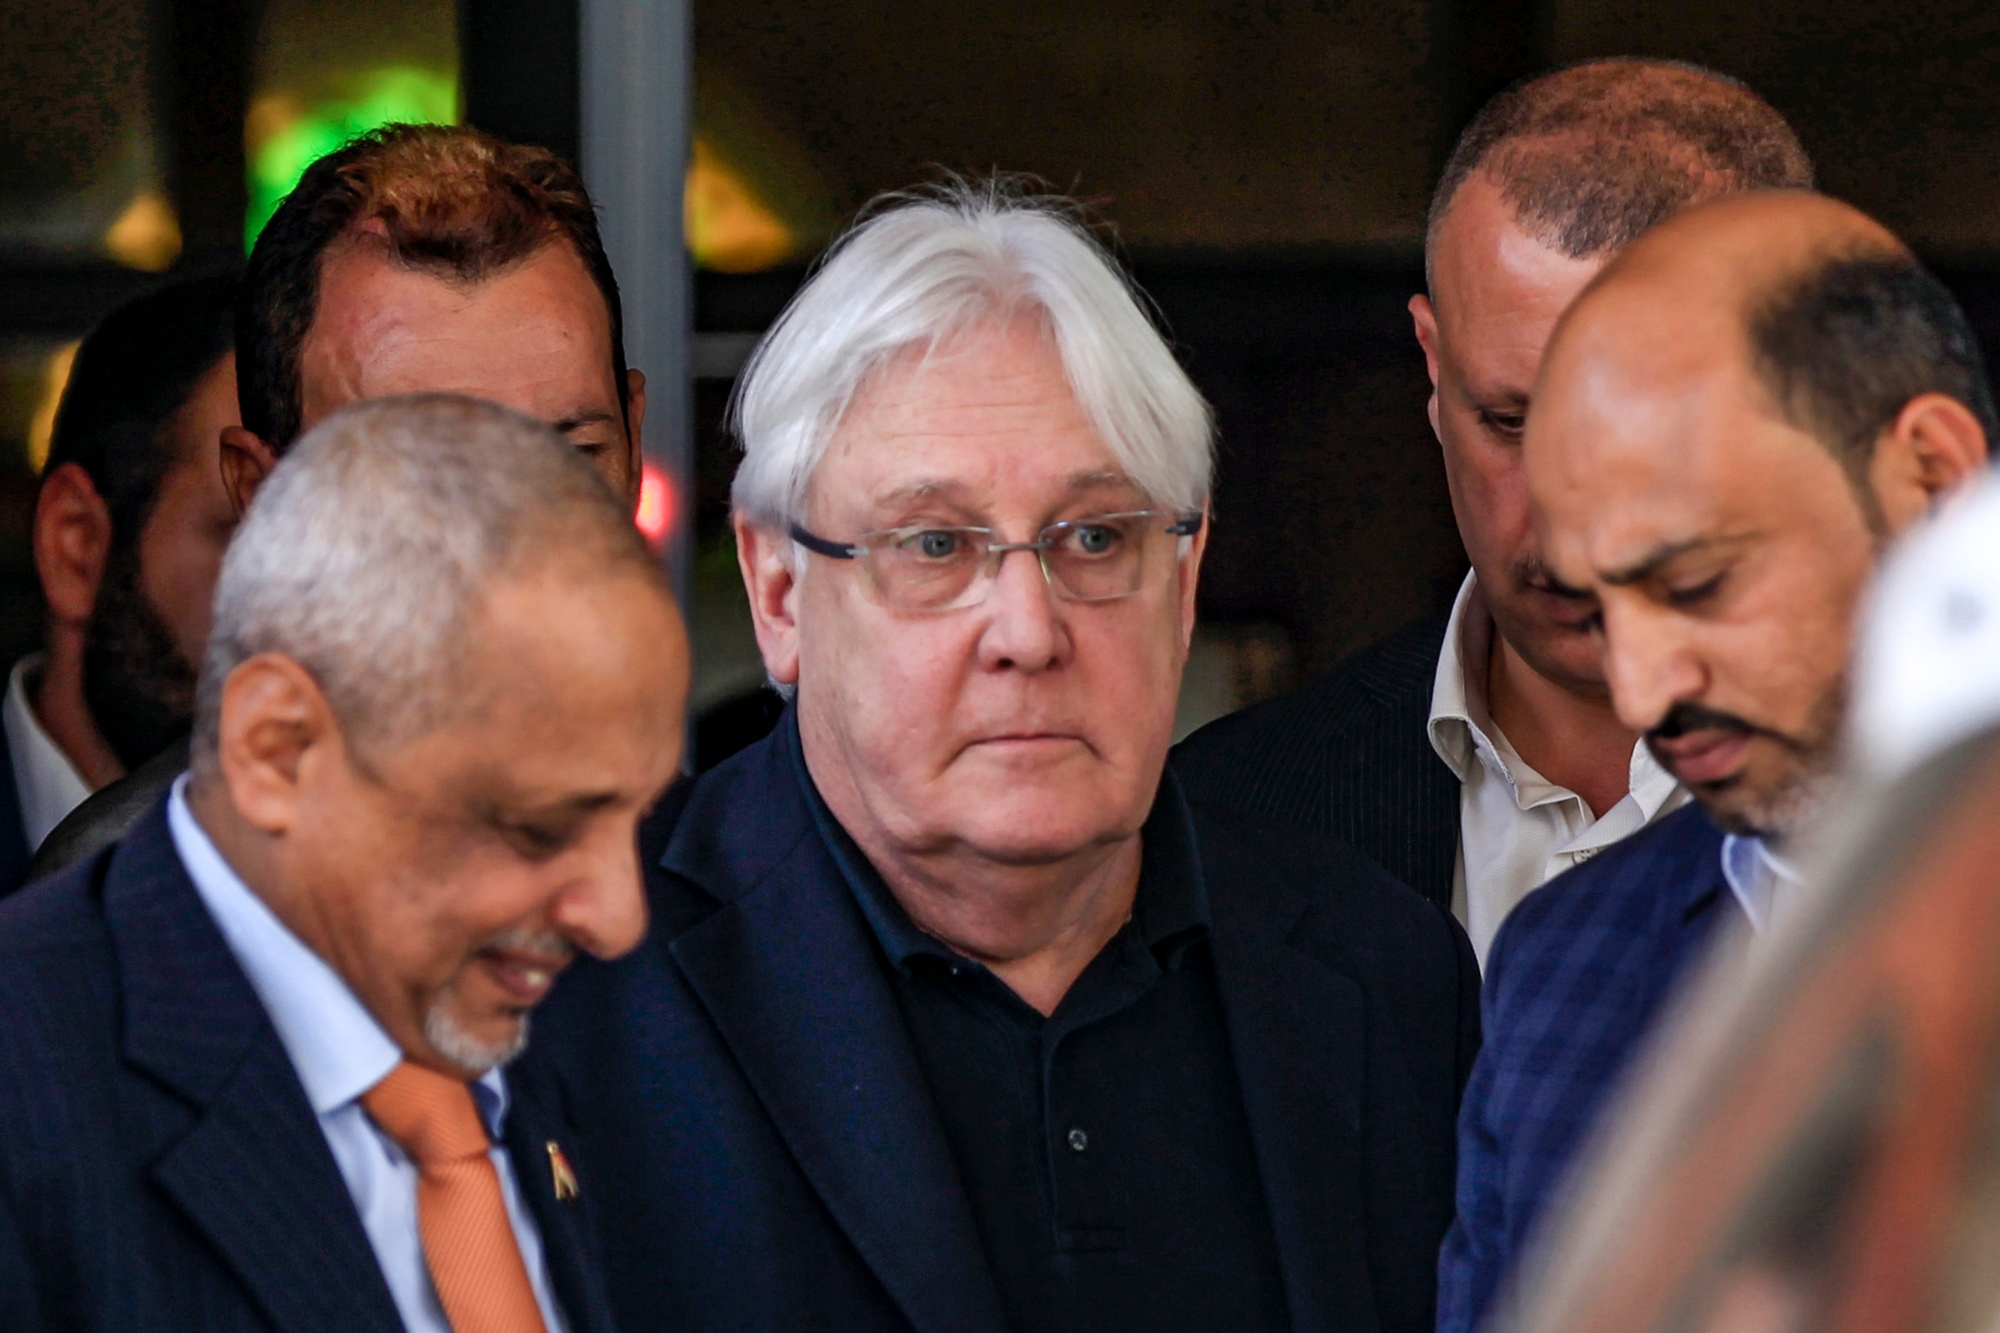 UN envoy Martin Griffiths told the security council that fighting in Marib threatened to displace tens of thousands (AFP)